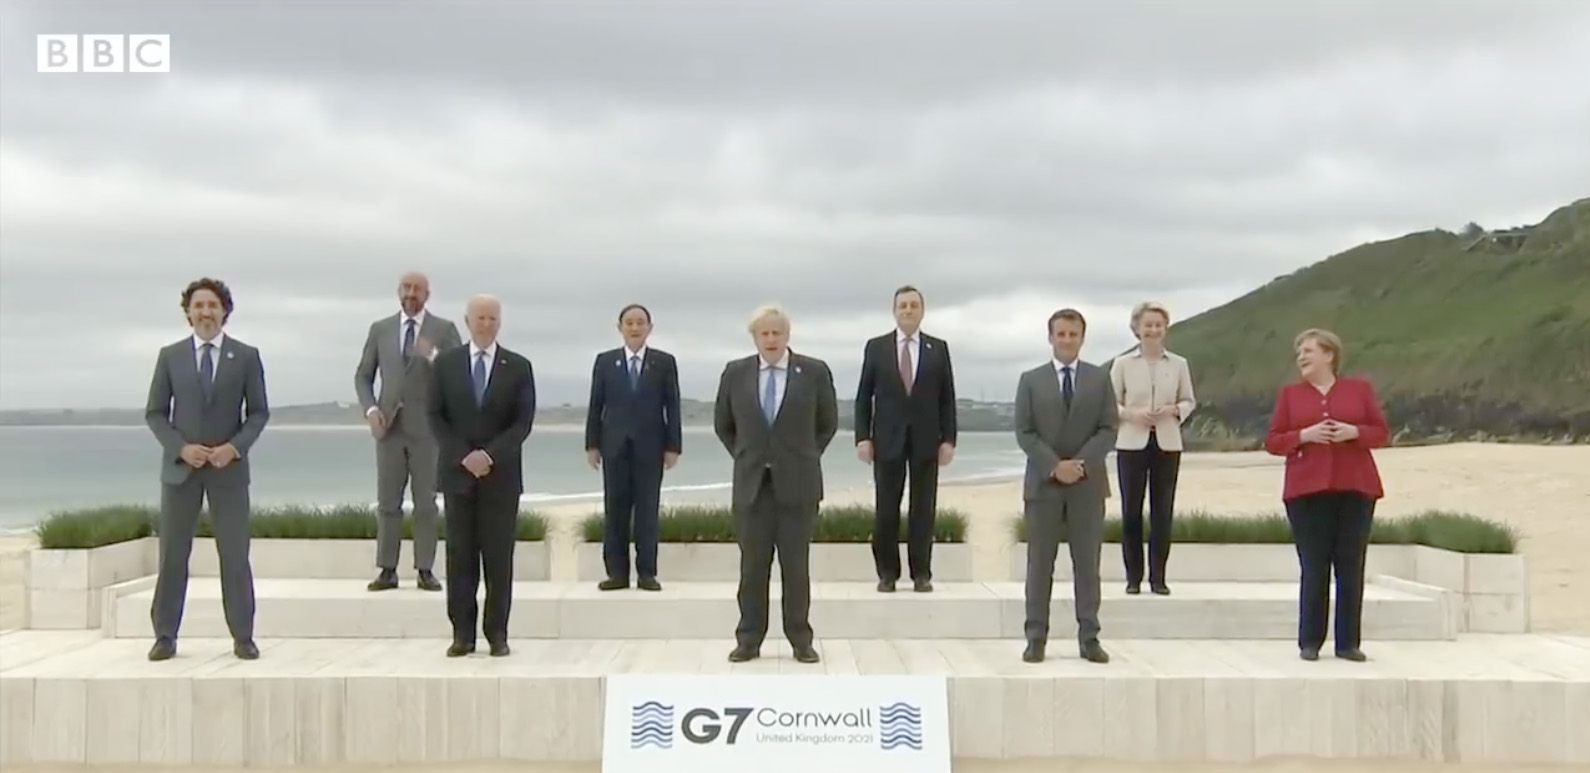 G7: Emmanuel Macron is said to have upset British Foreign Secretary Dominic Raab with comments he made on our geographical state